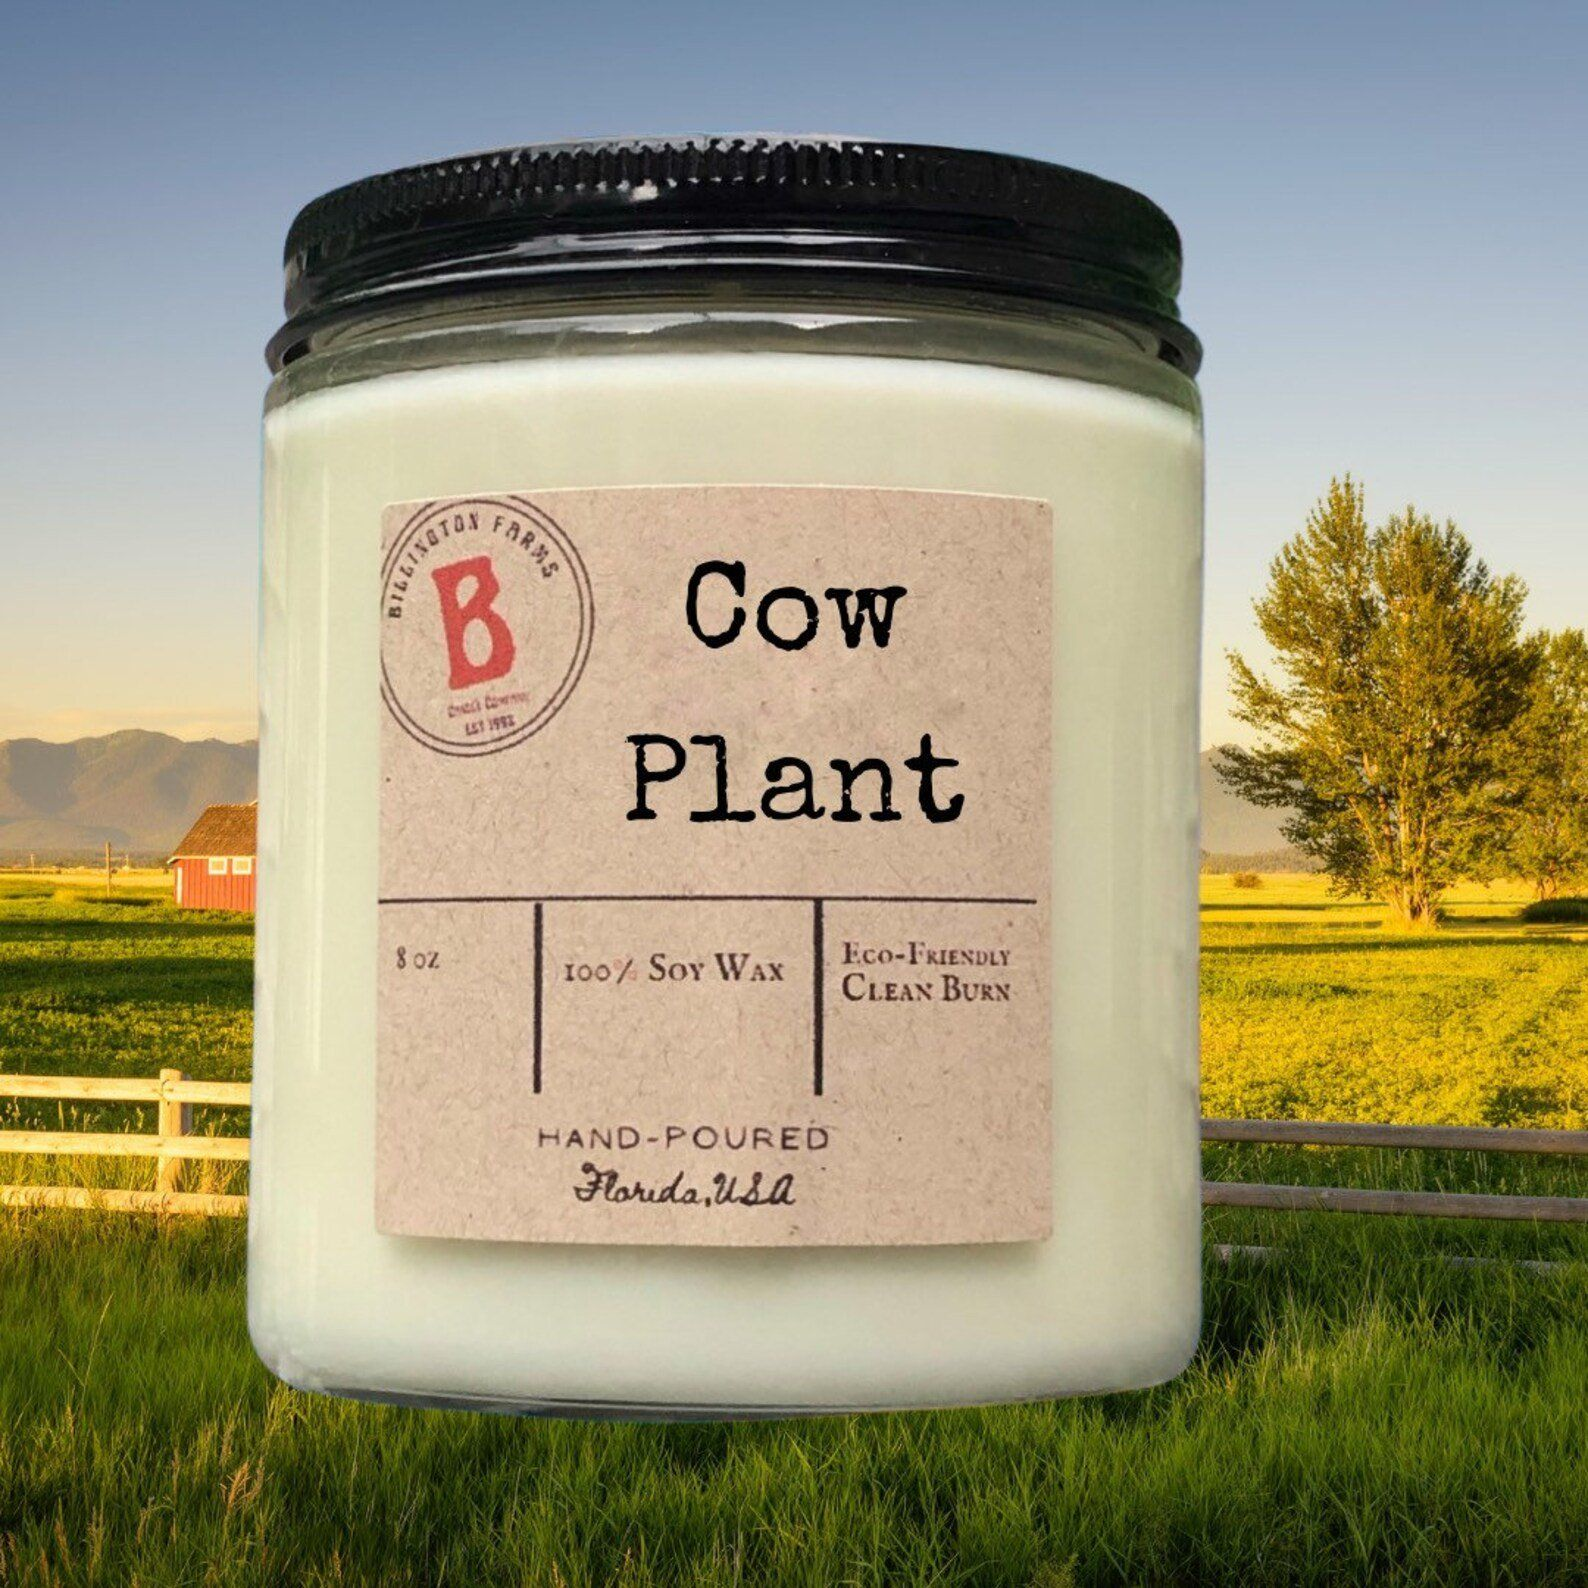 Cow Plant | Sims 4 Inspired | 100% Soy Wax Candles | Hand Poured